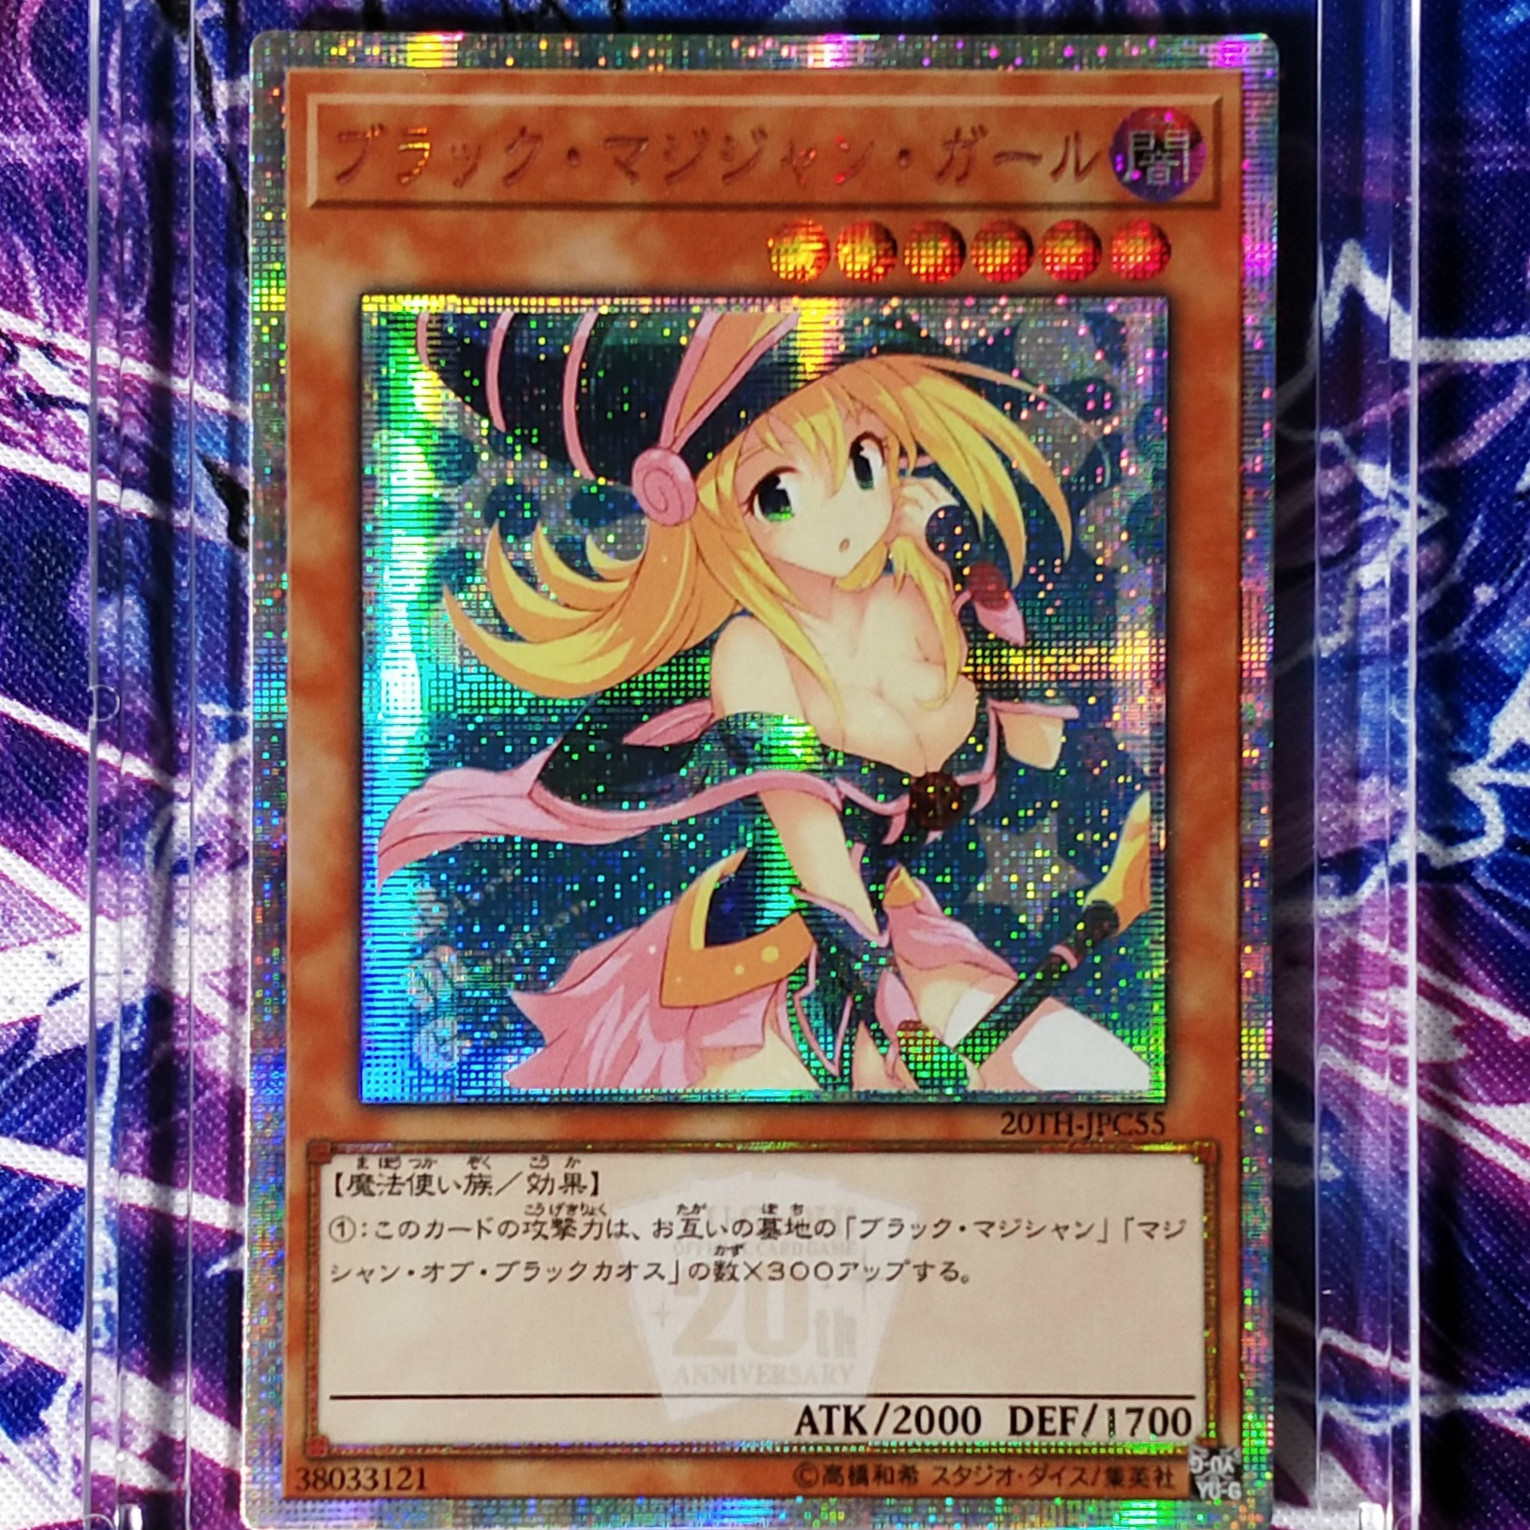 Yu Gi Oh DIY Dark Magician Girl Colorful Toys Hobbies Hobby Collectibles Game Collection Anime Cards